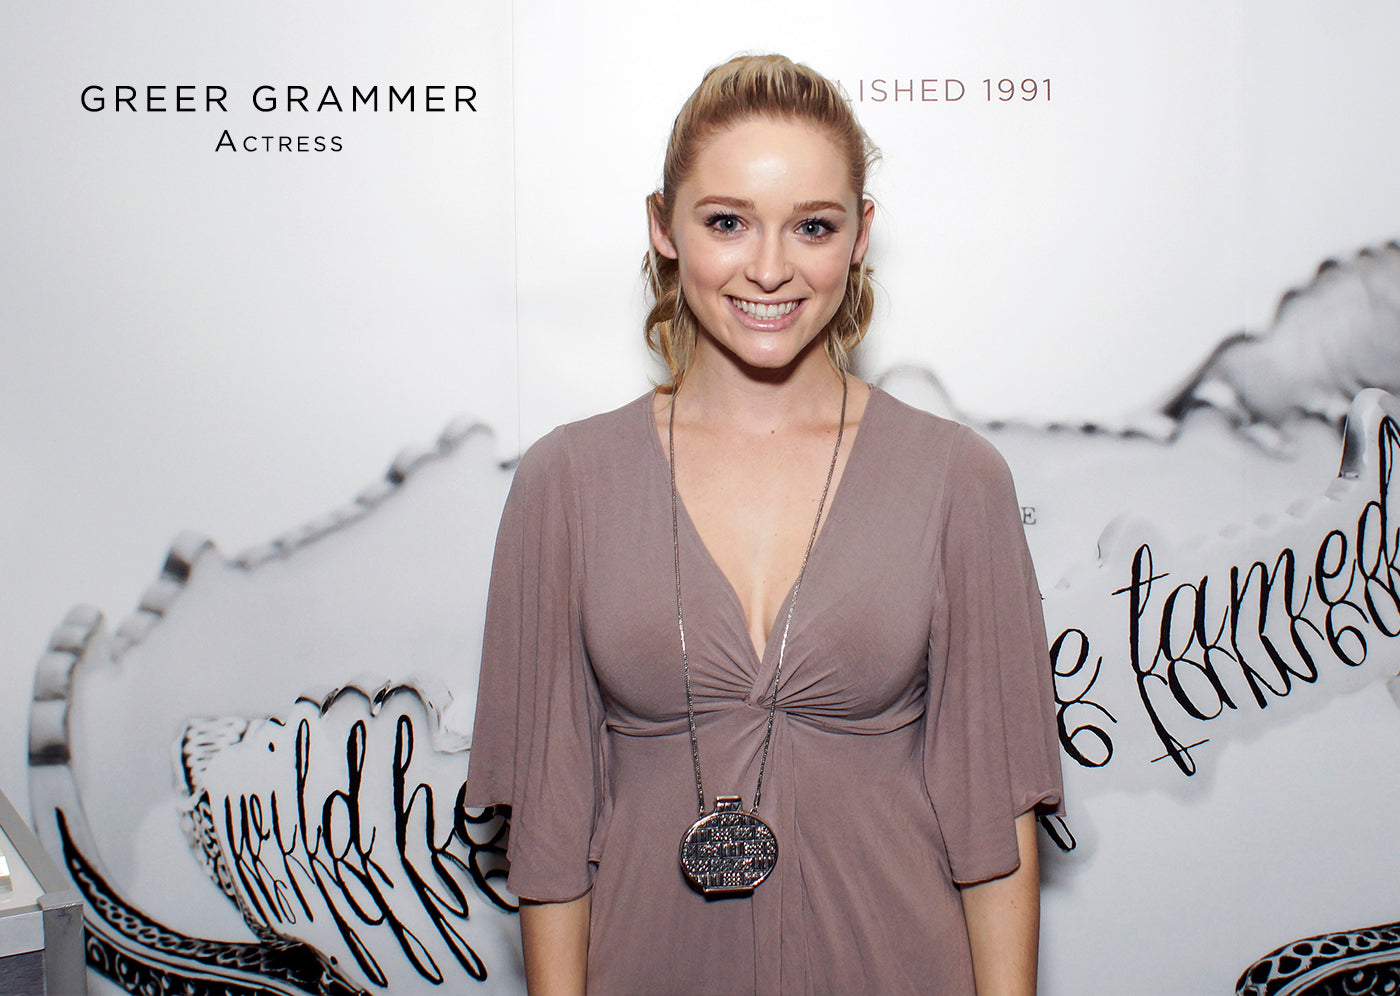 Greer Grammer fashion style